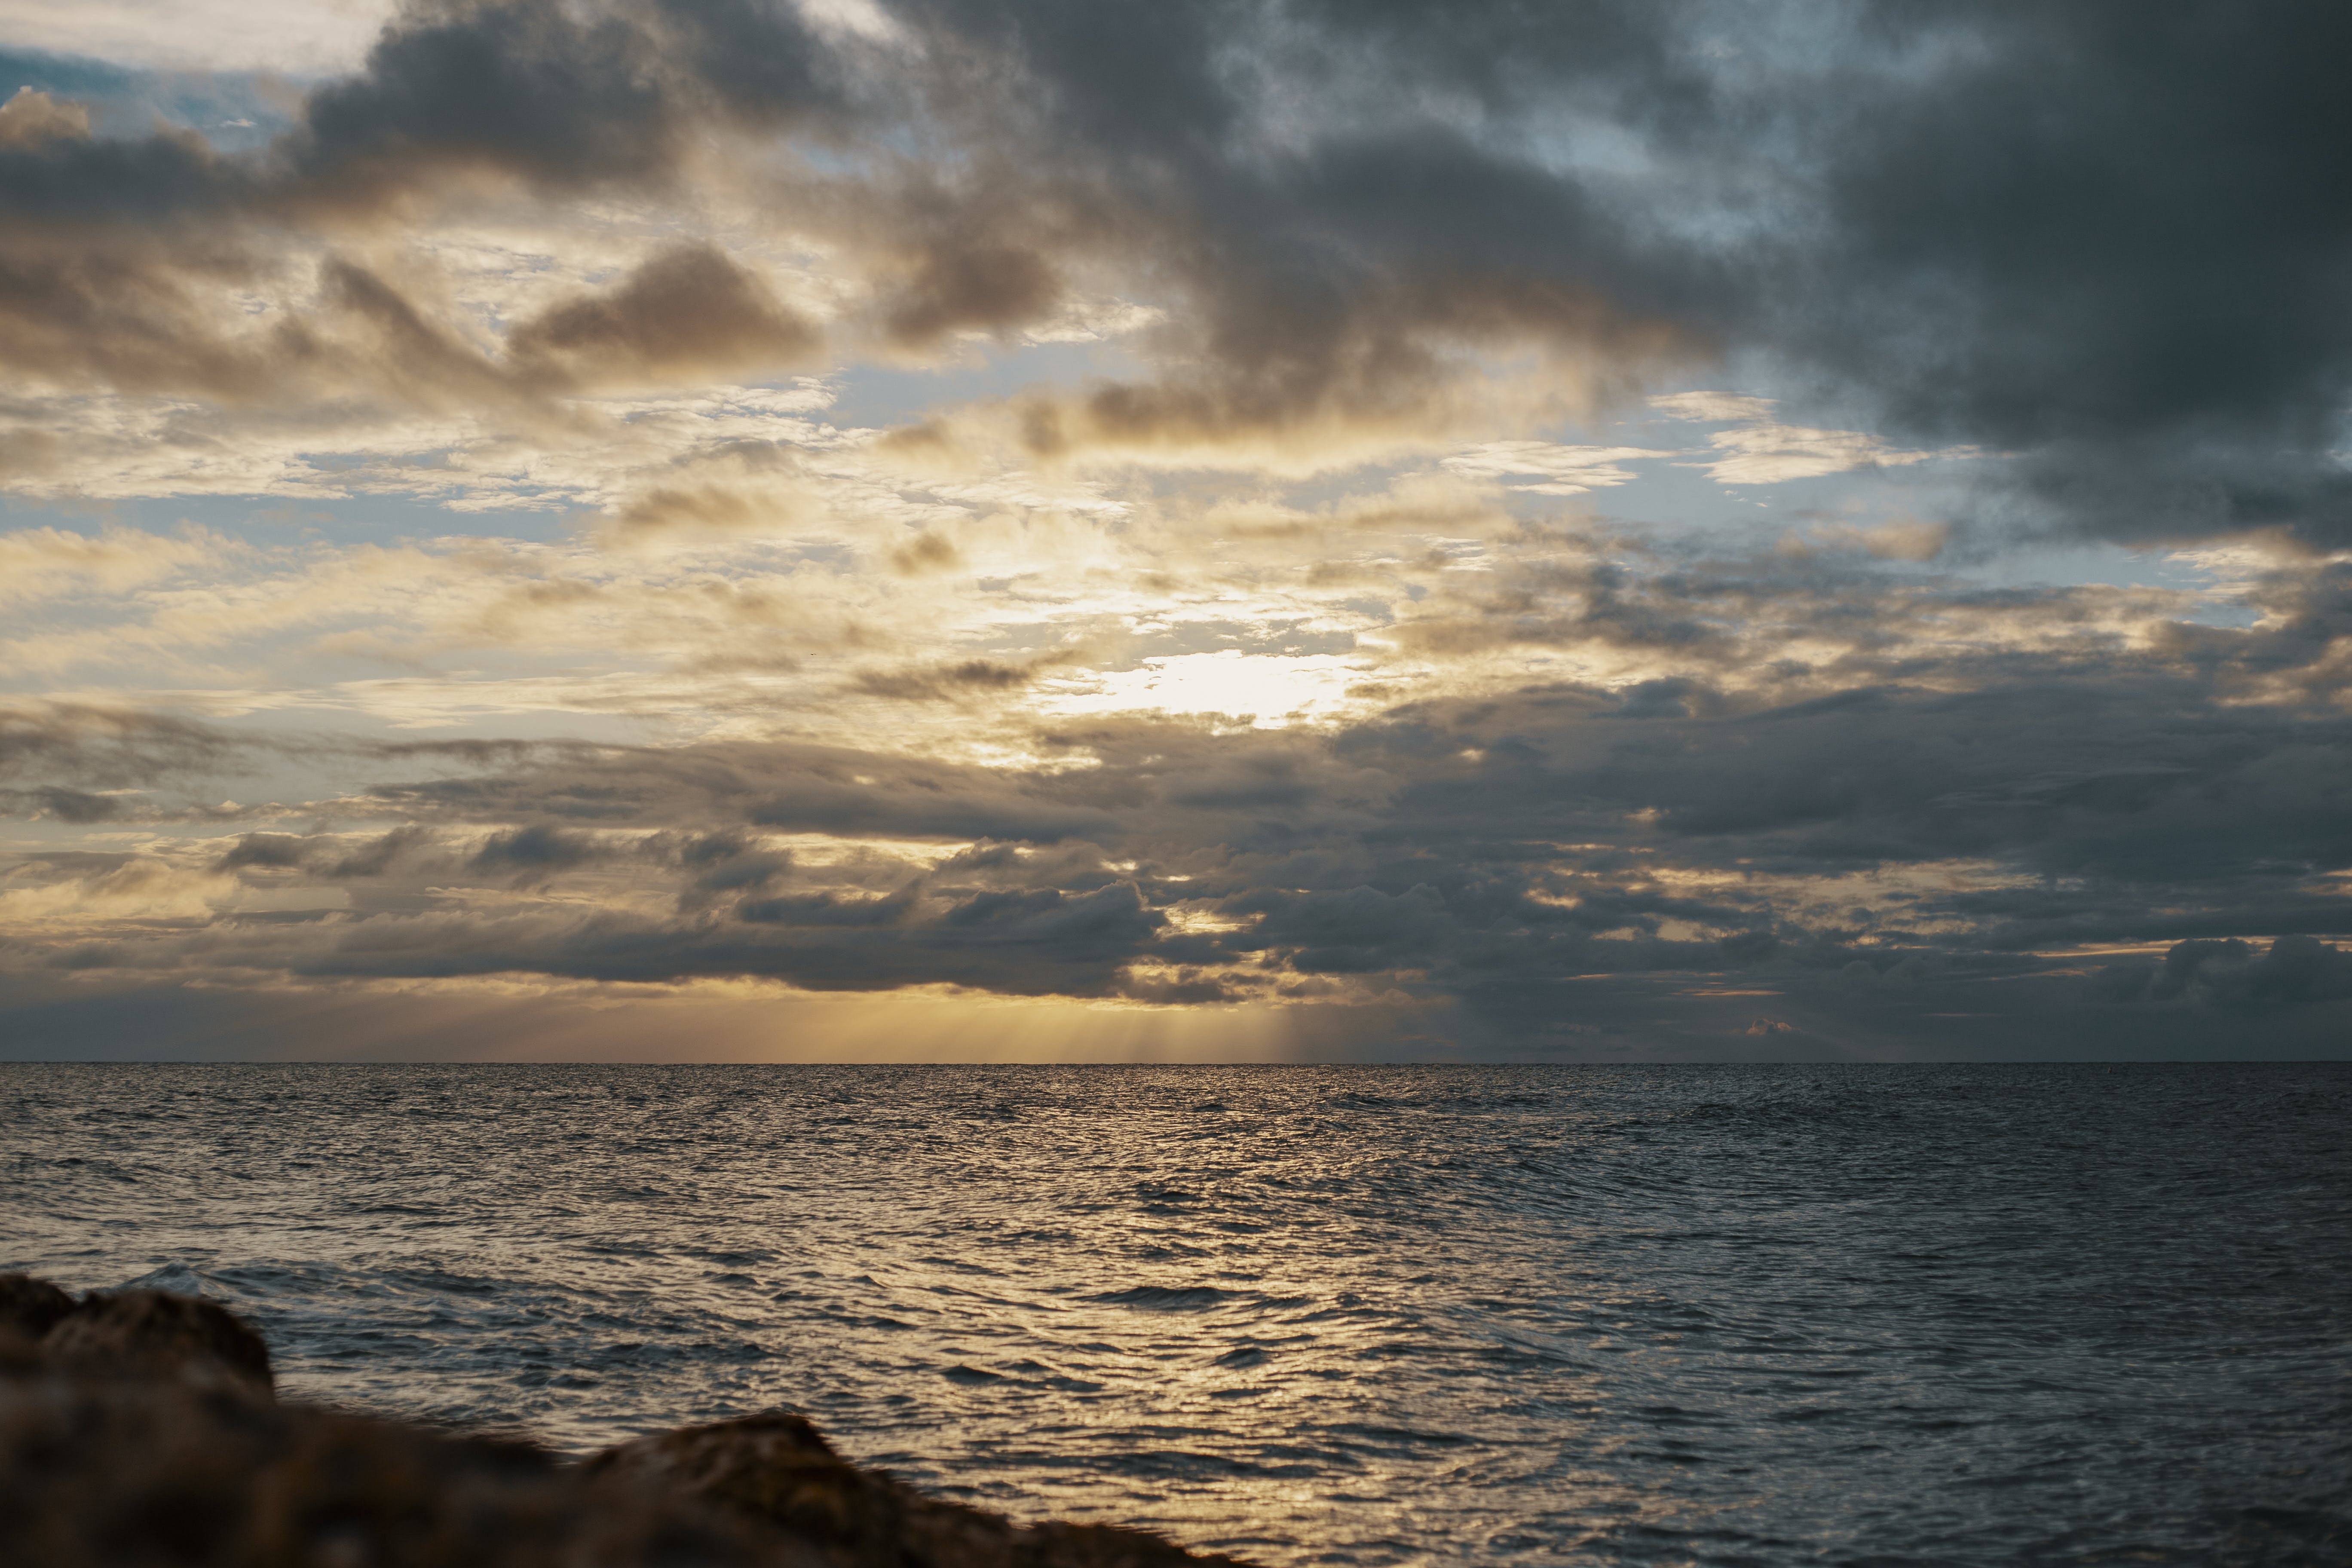 Sea Under Gray Cloudy Sky during Dawn